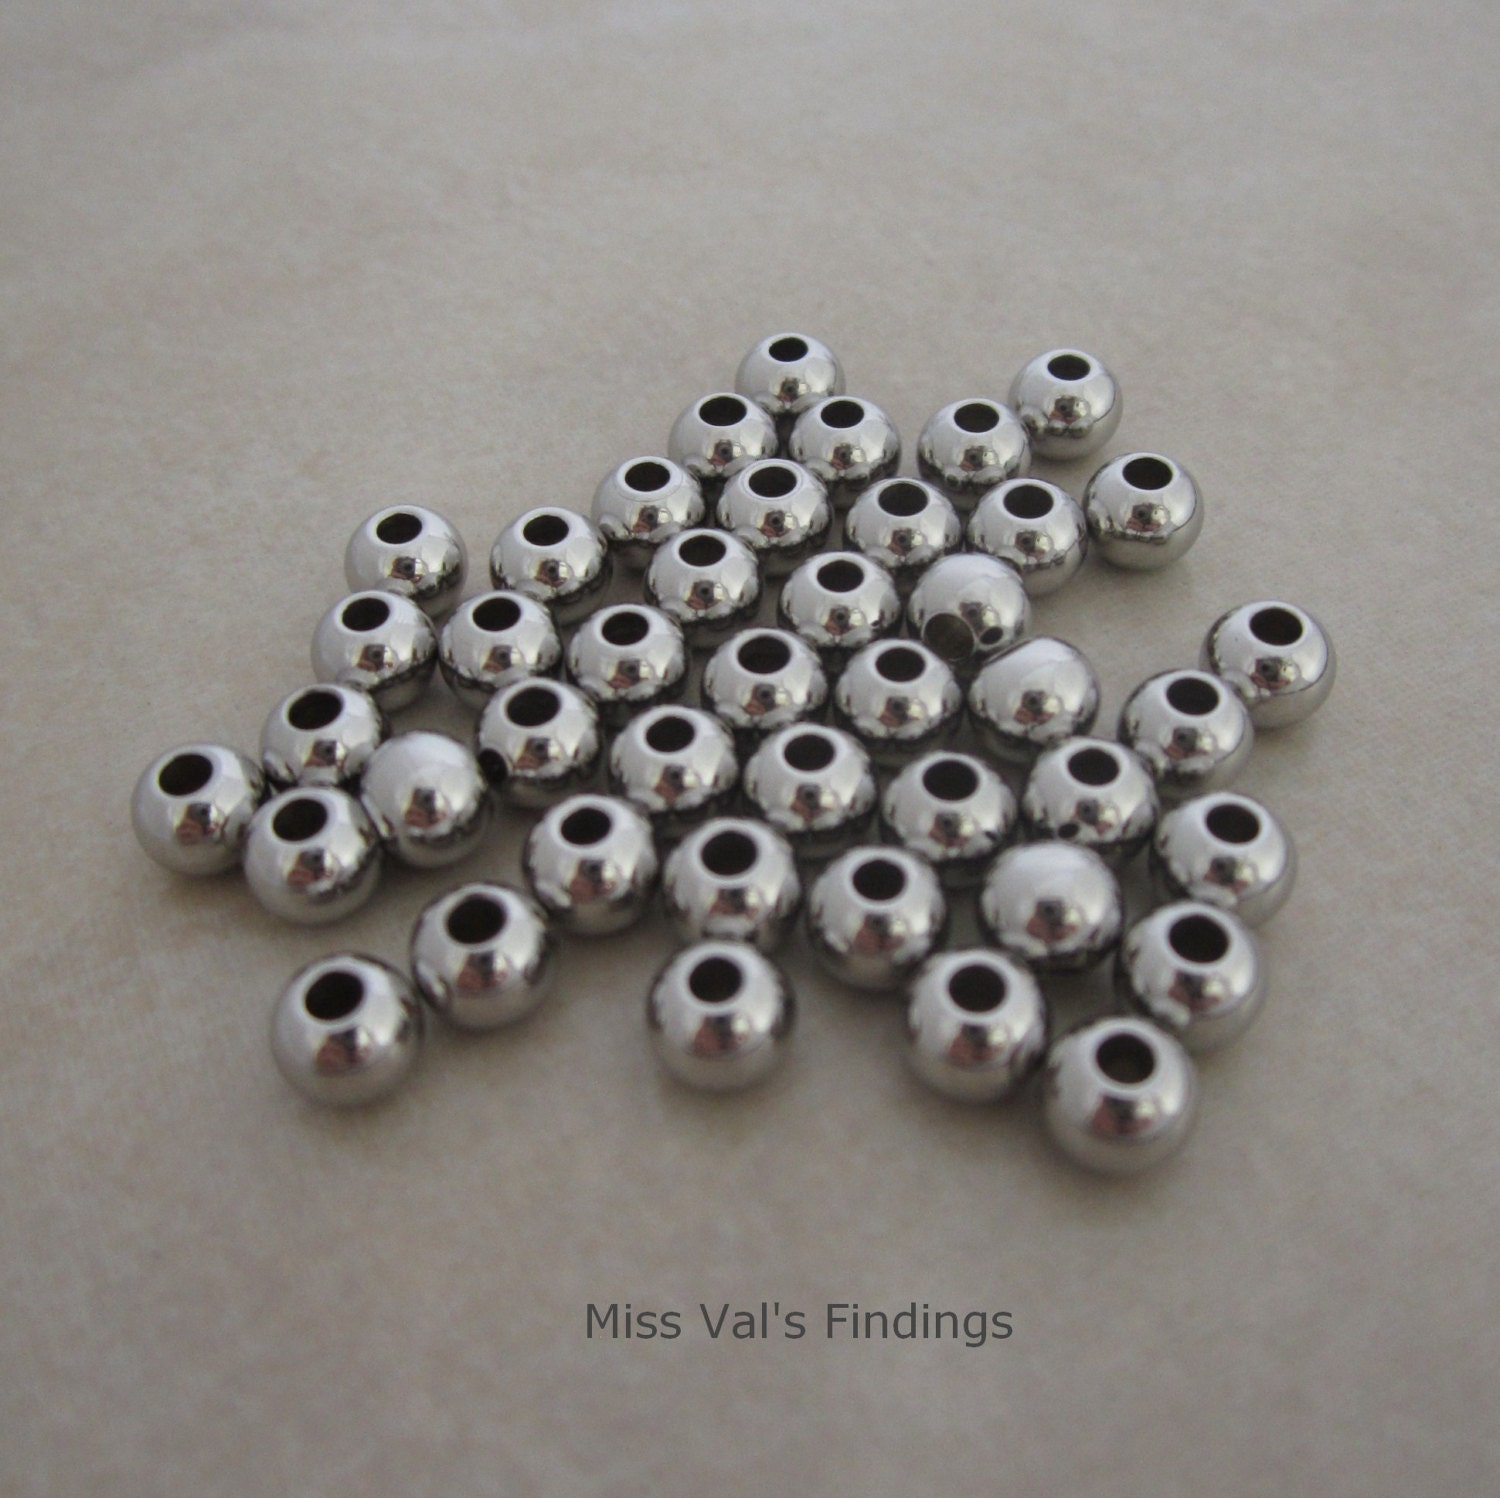 100 Stainless Steel Beads 6mm Round Seamless From